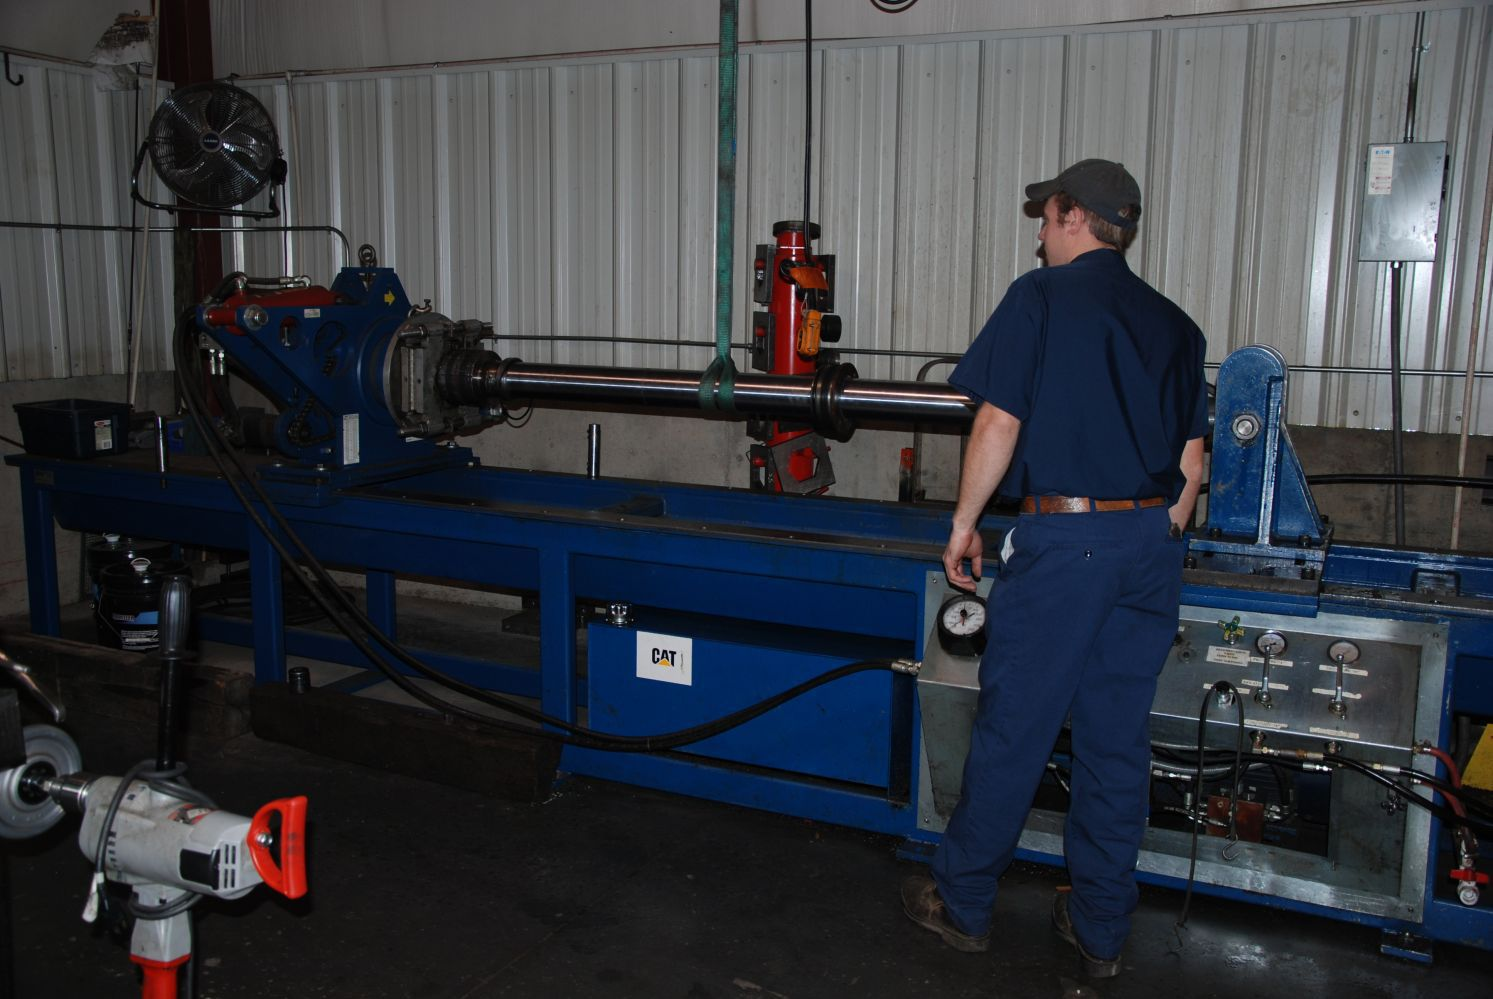 Nut buster for hydraulic cylinders